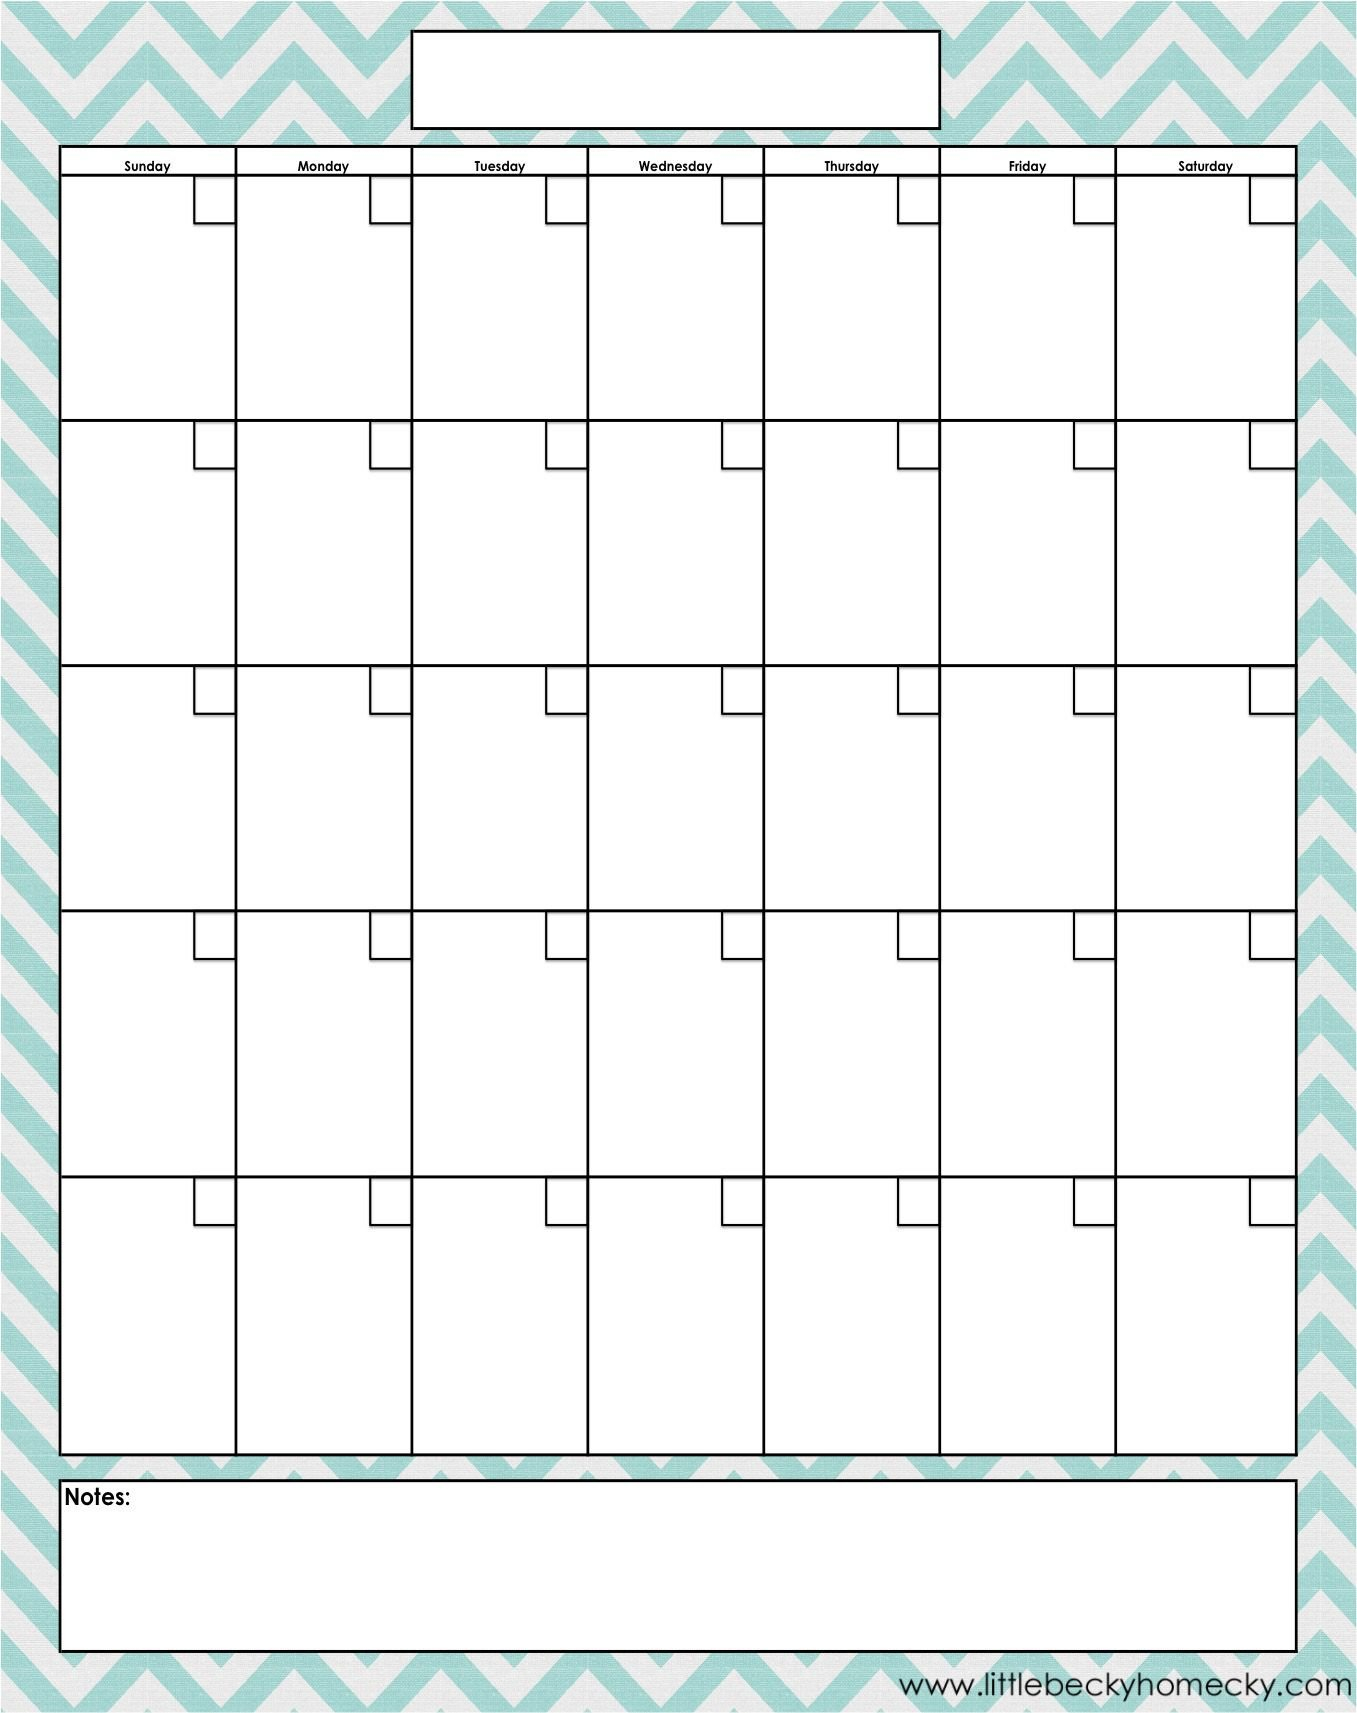 Blank Fill In Calendar | Calendar Template Printable How To Fill In Calendar & Print